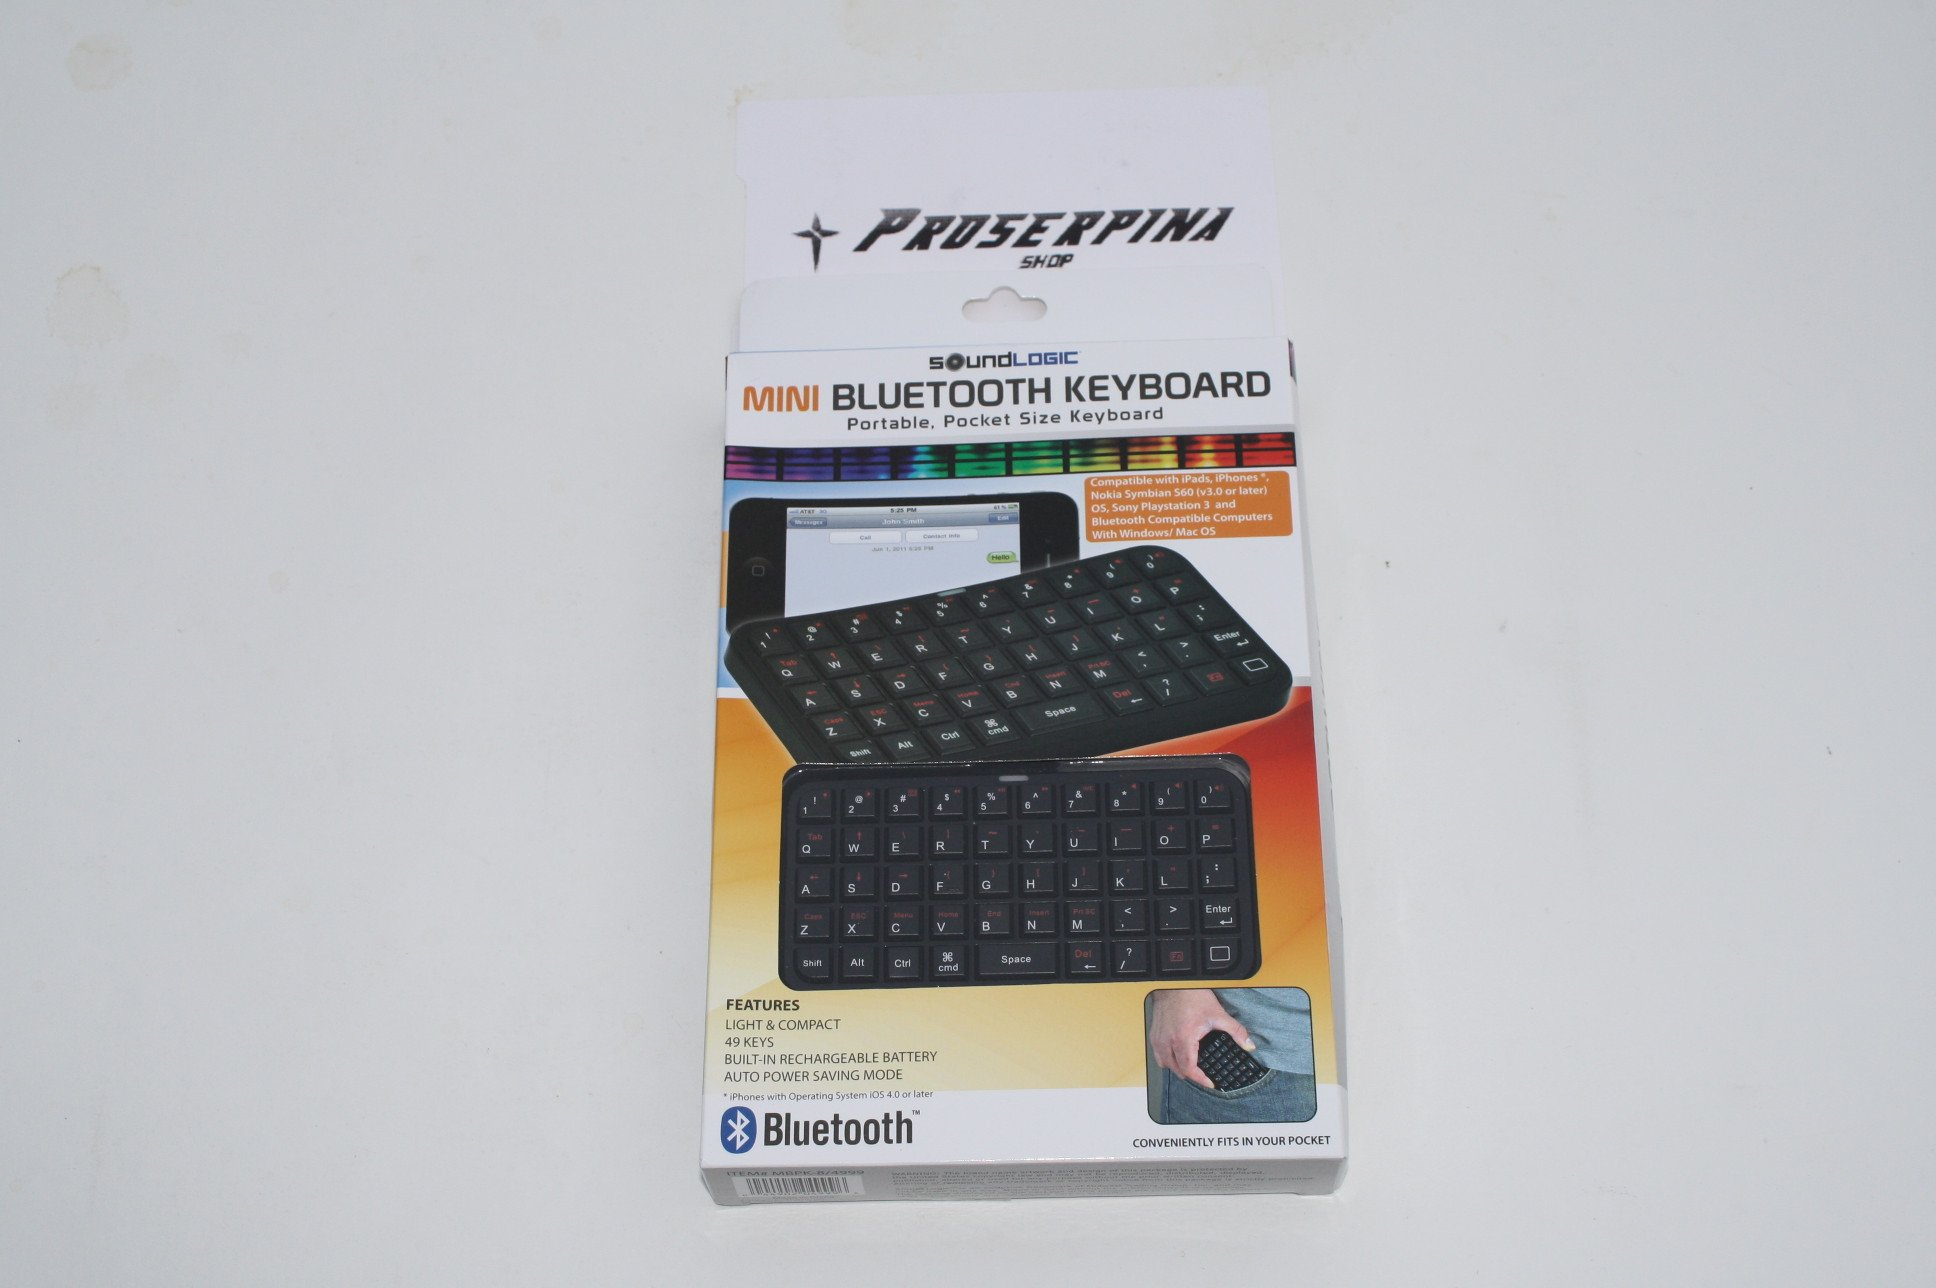 Mini Bluetooth Keyboard by SoundLogic